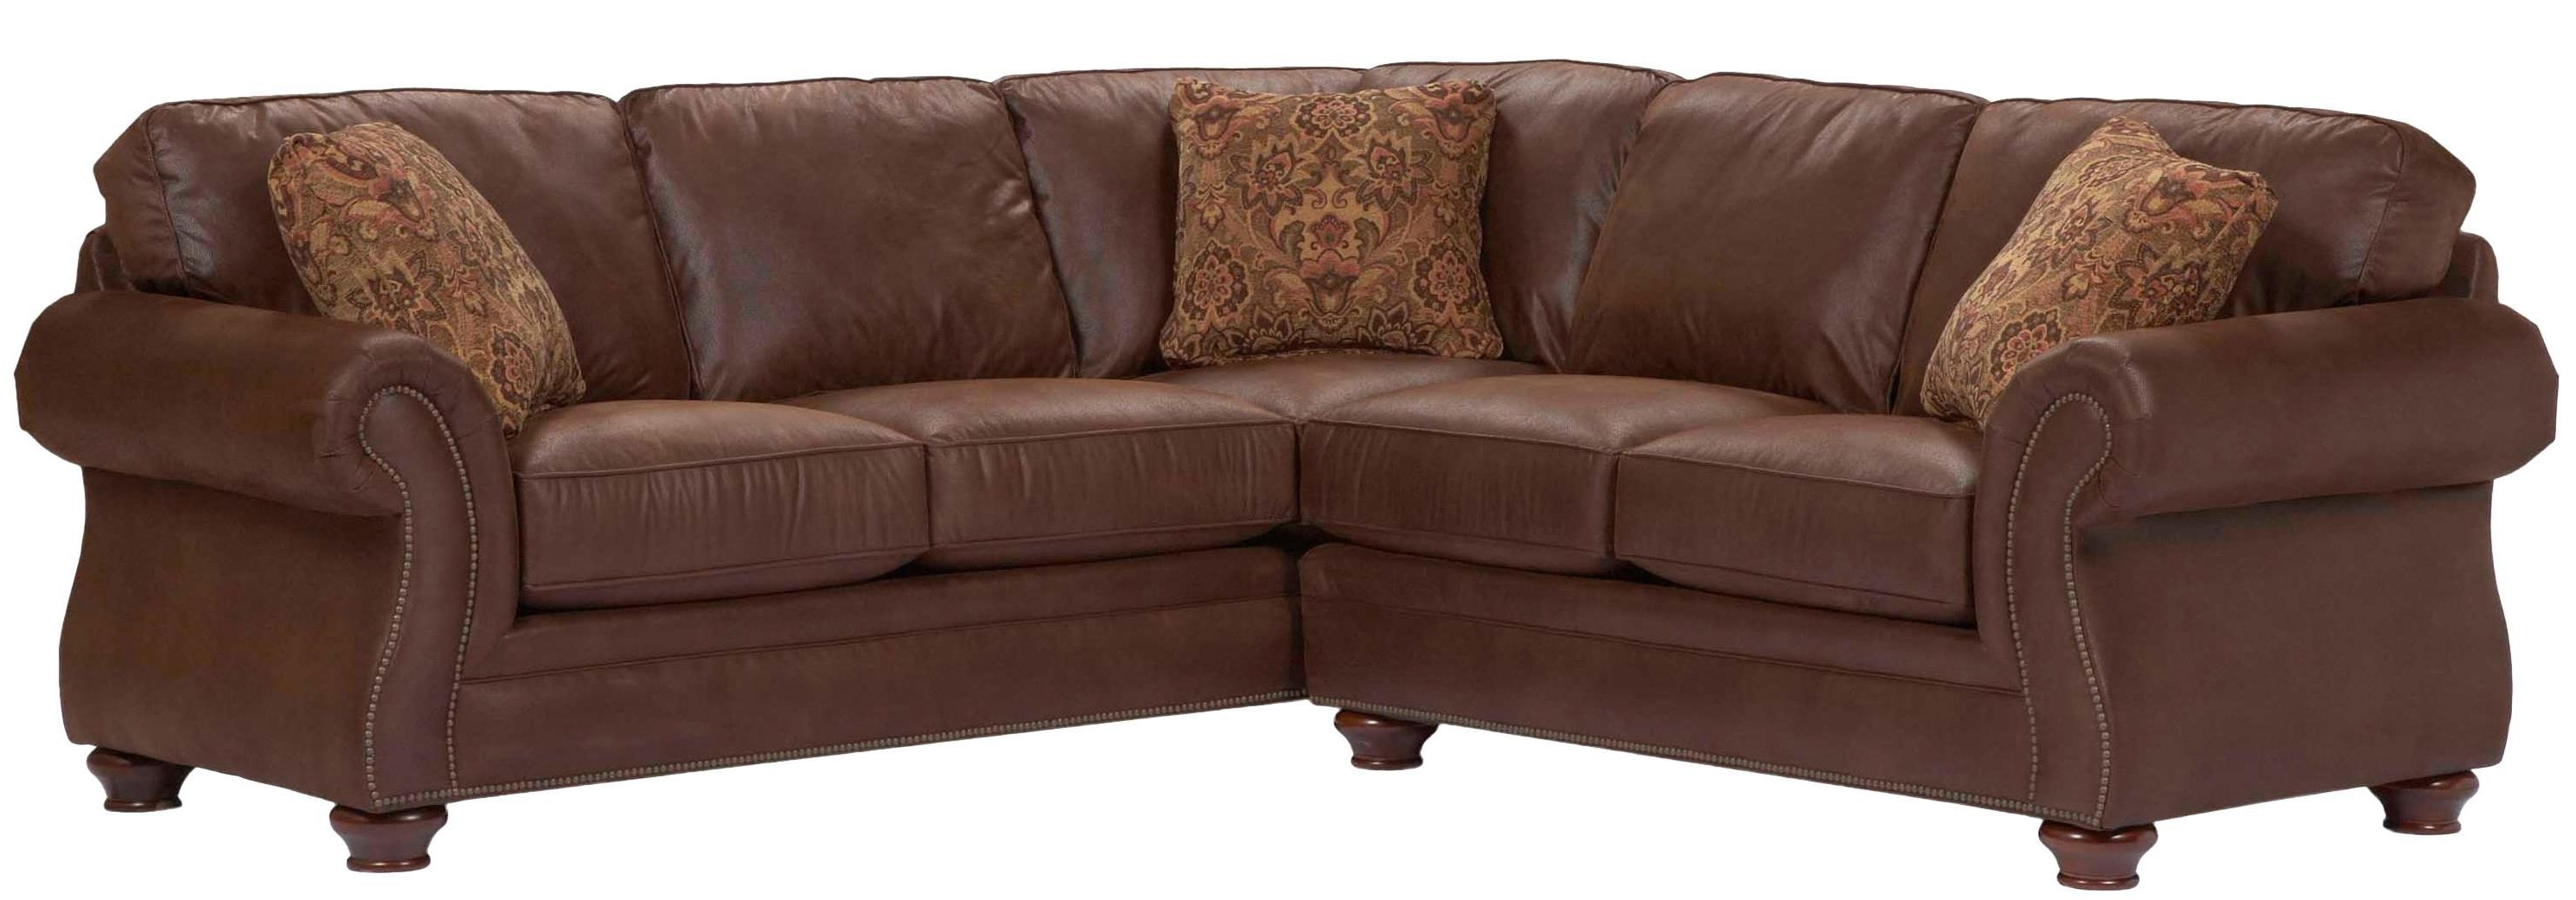 Broyhill Sectional Sofas In Recent Broyhill Furniture Laramie 2 Piece Corner Sectional Sofa (View 6 of 20)